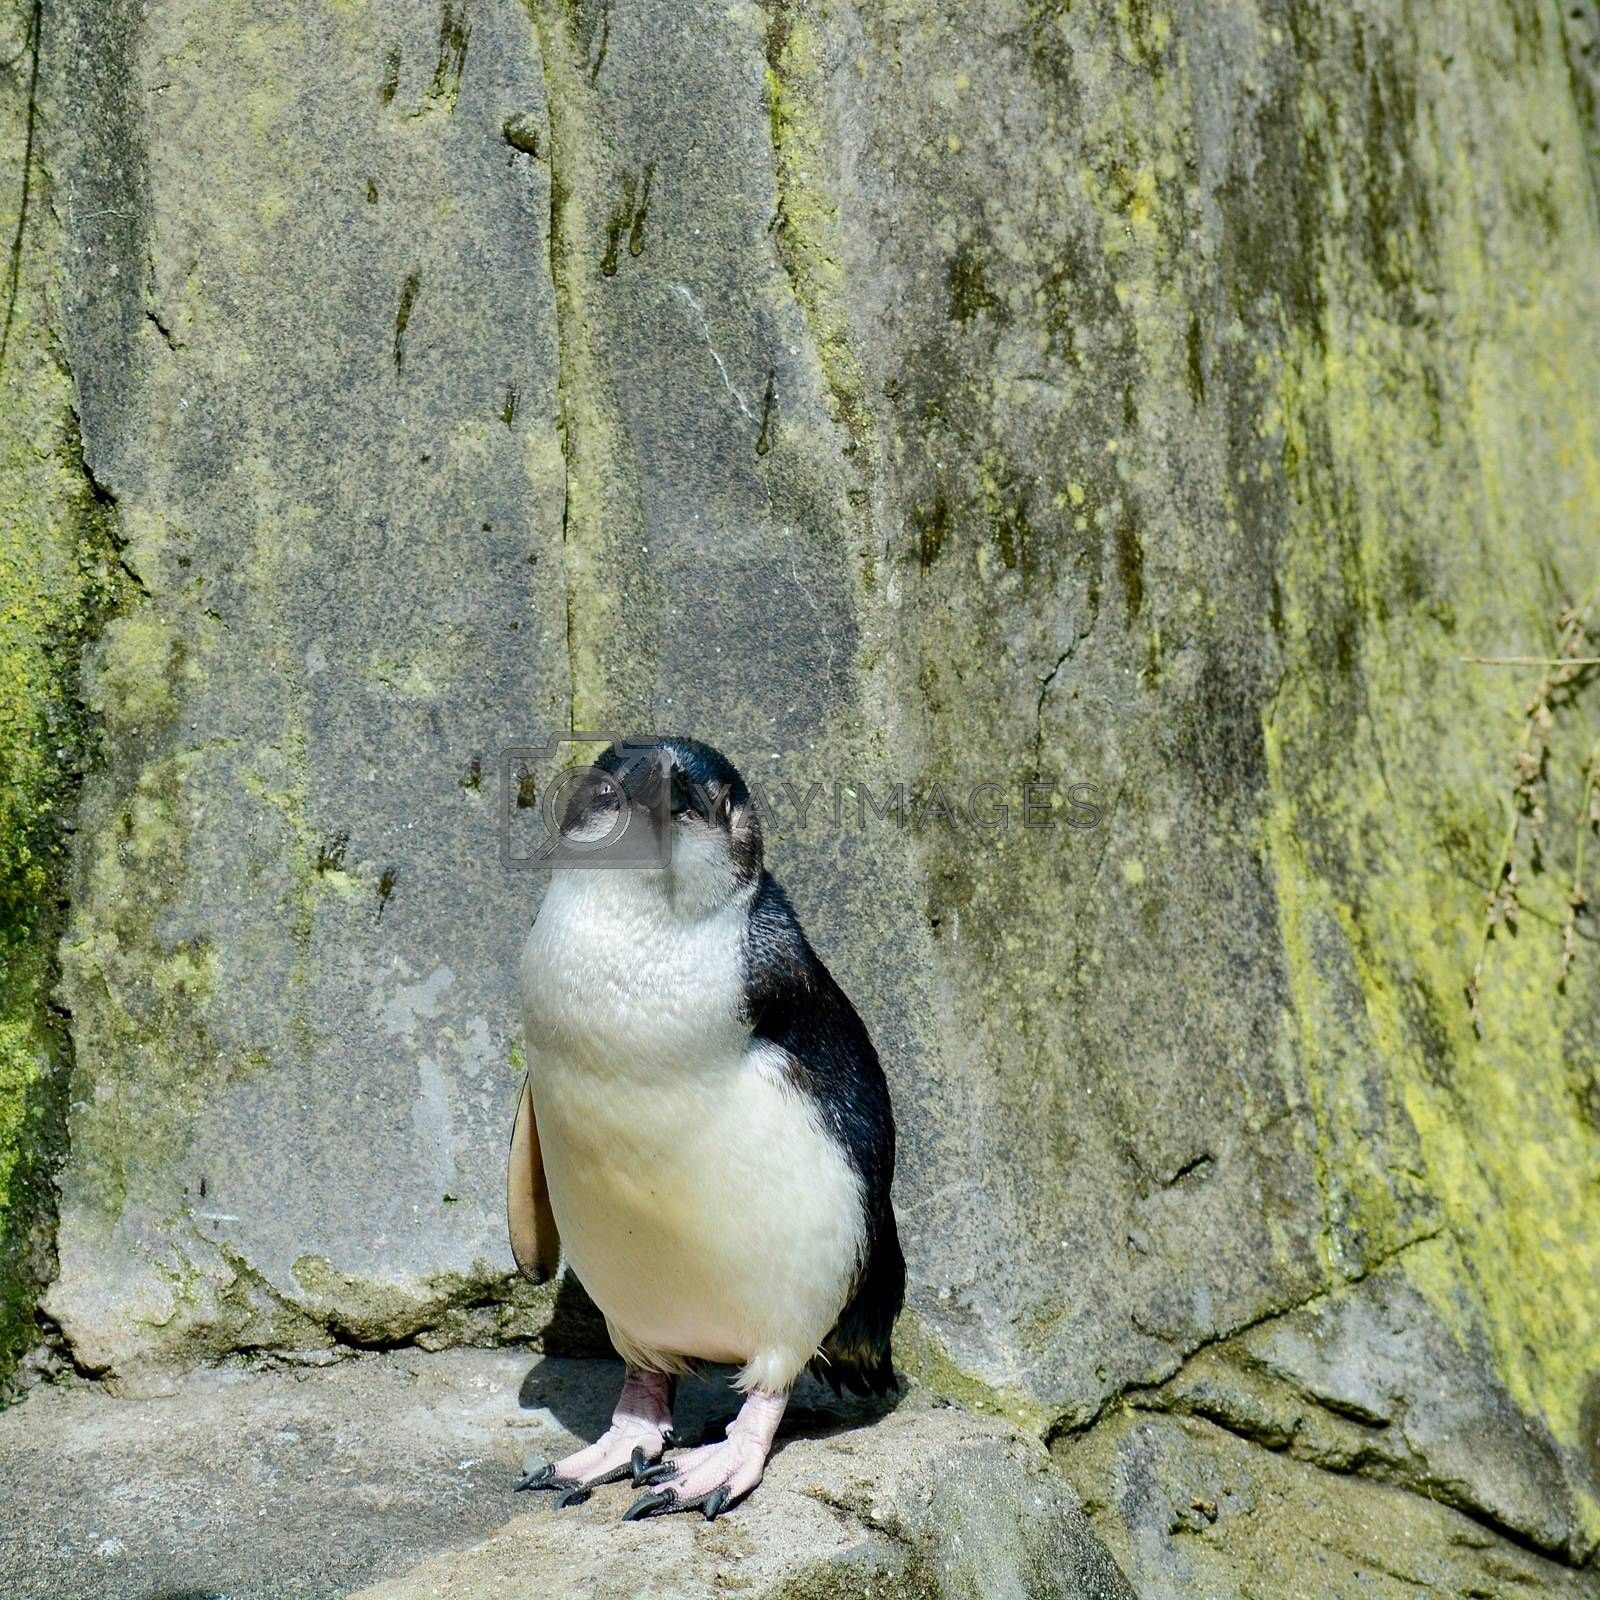 Penguins resqued from fishing nets, with lost wings.